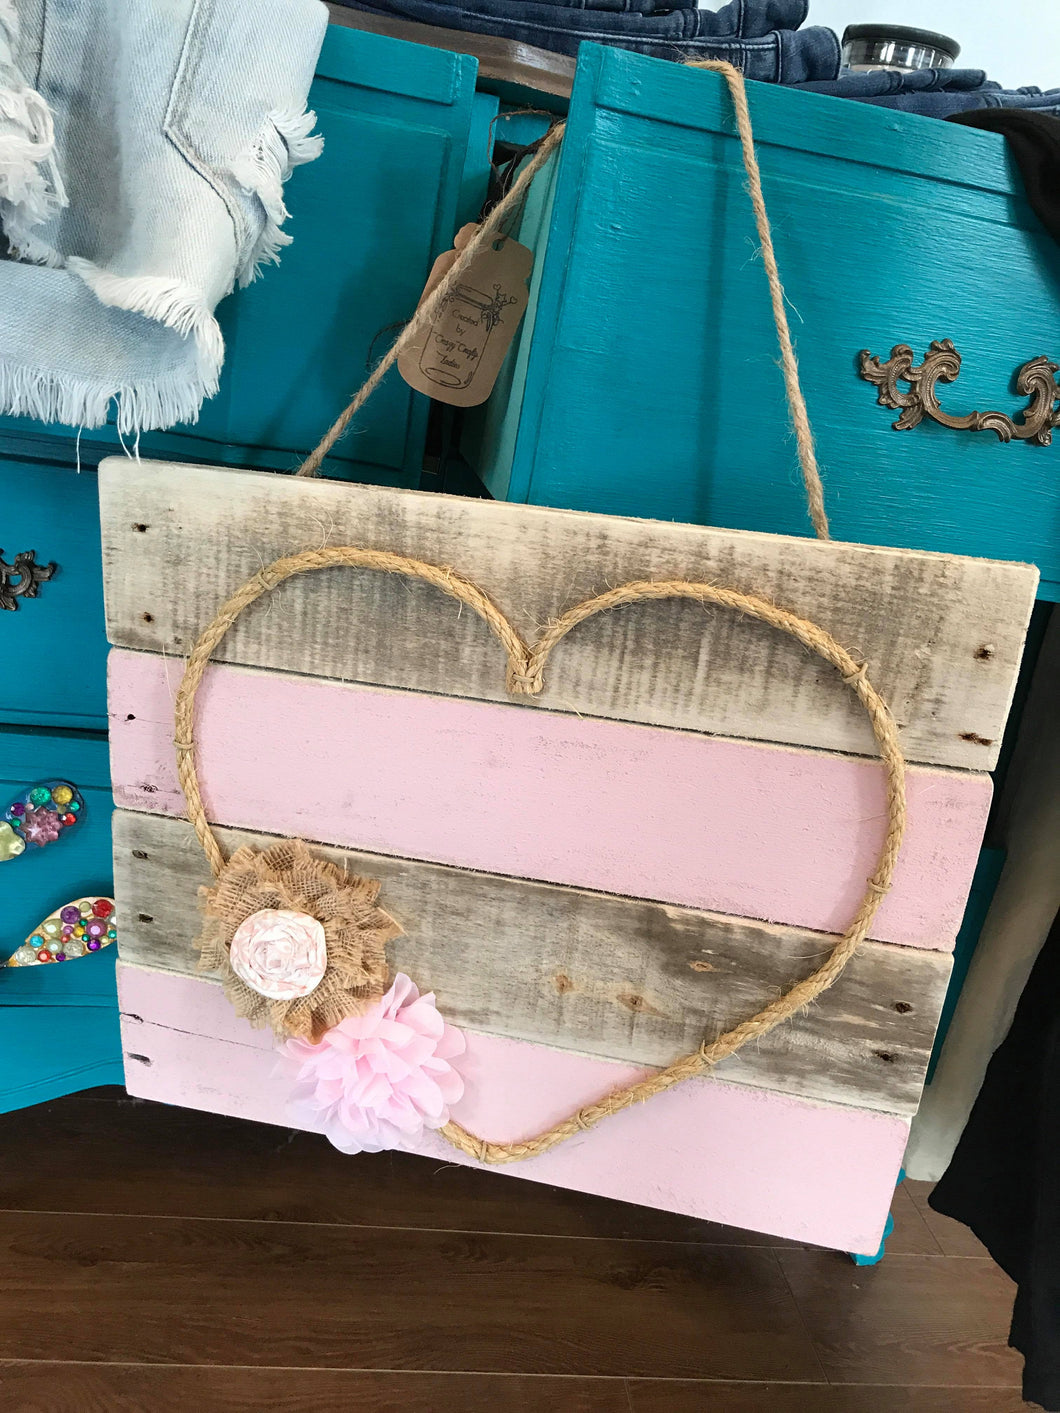 Roped My heart-Home Goods-Crazy Crafty Ladies-decor, Heart, NewArrival, sign-The Twisted Chandelier